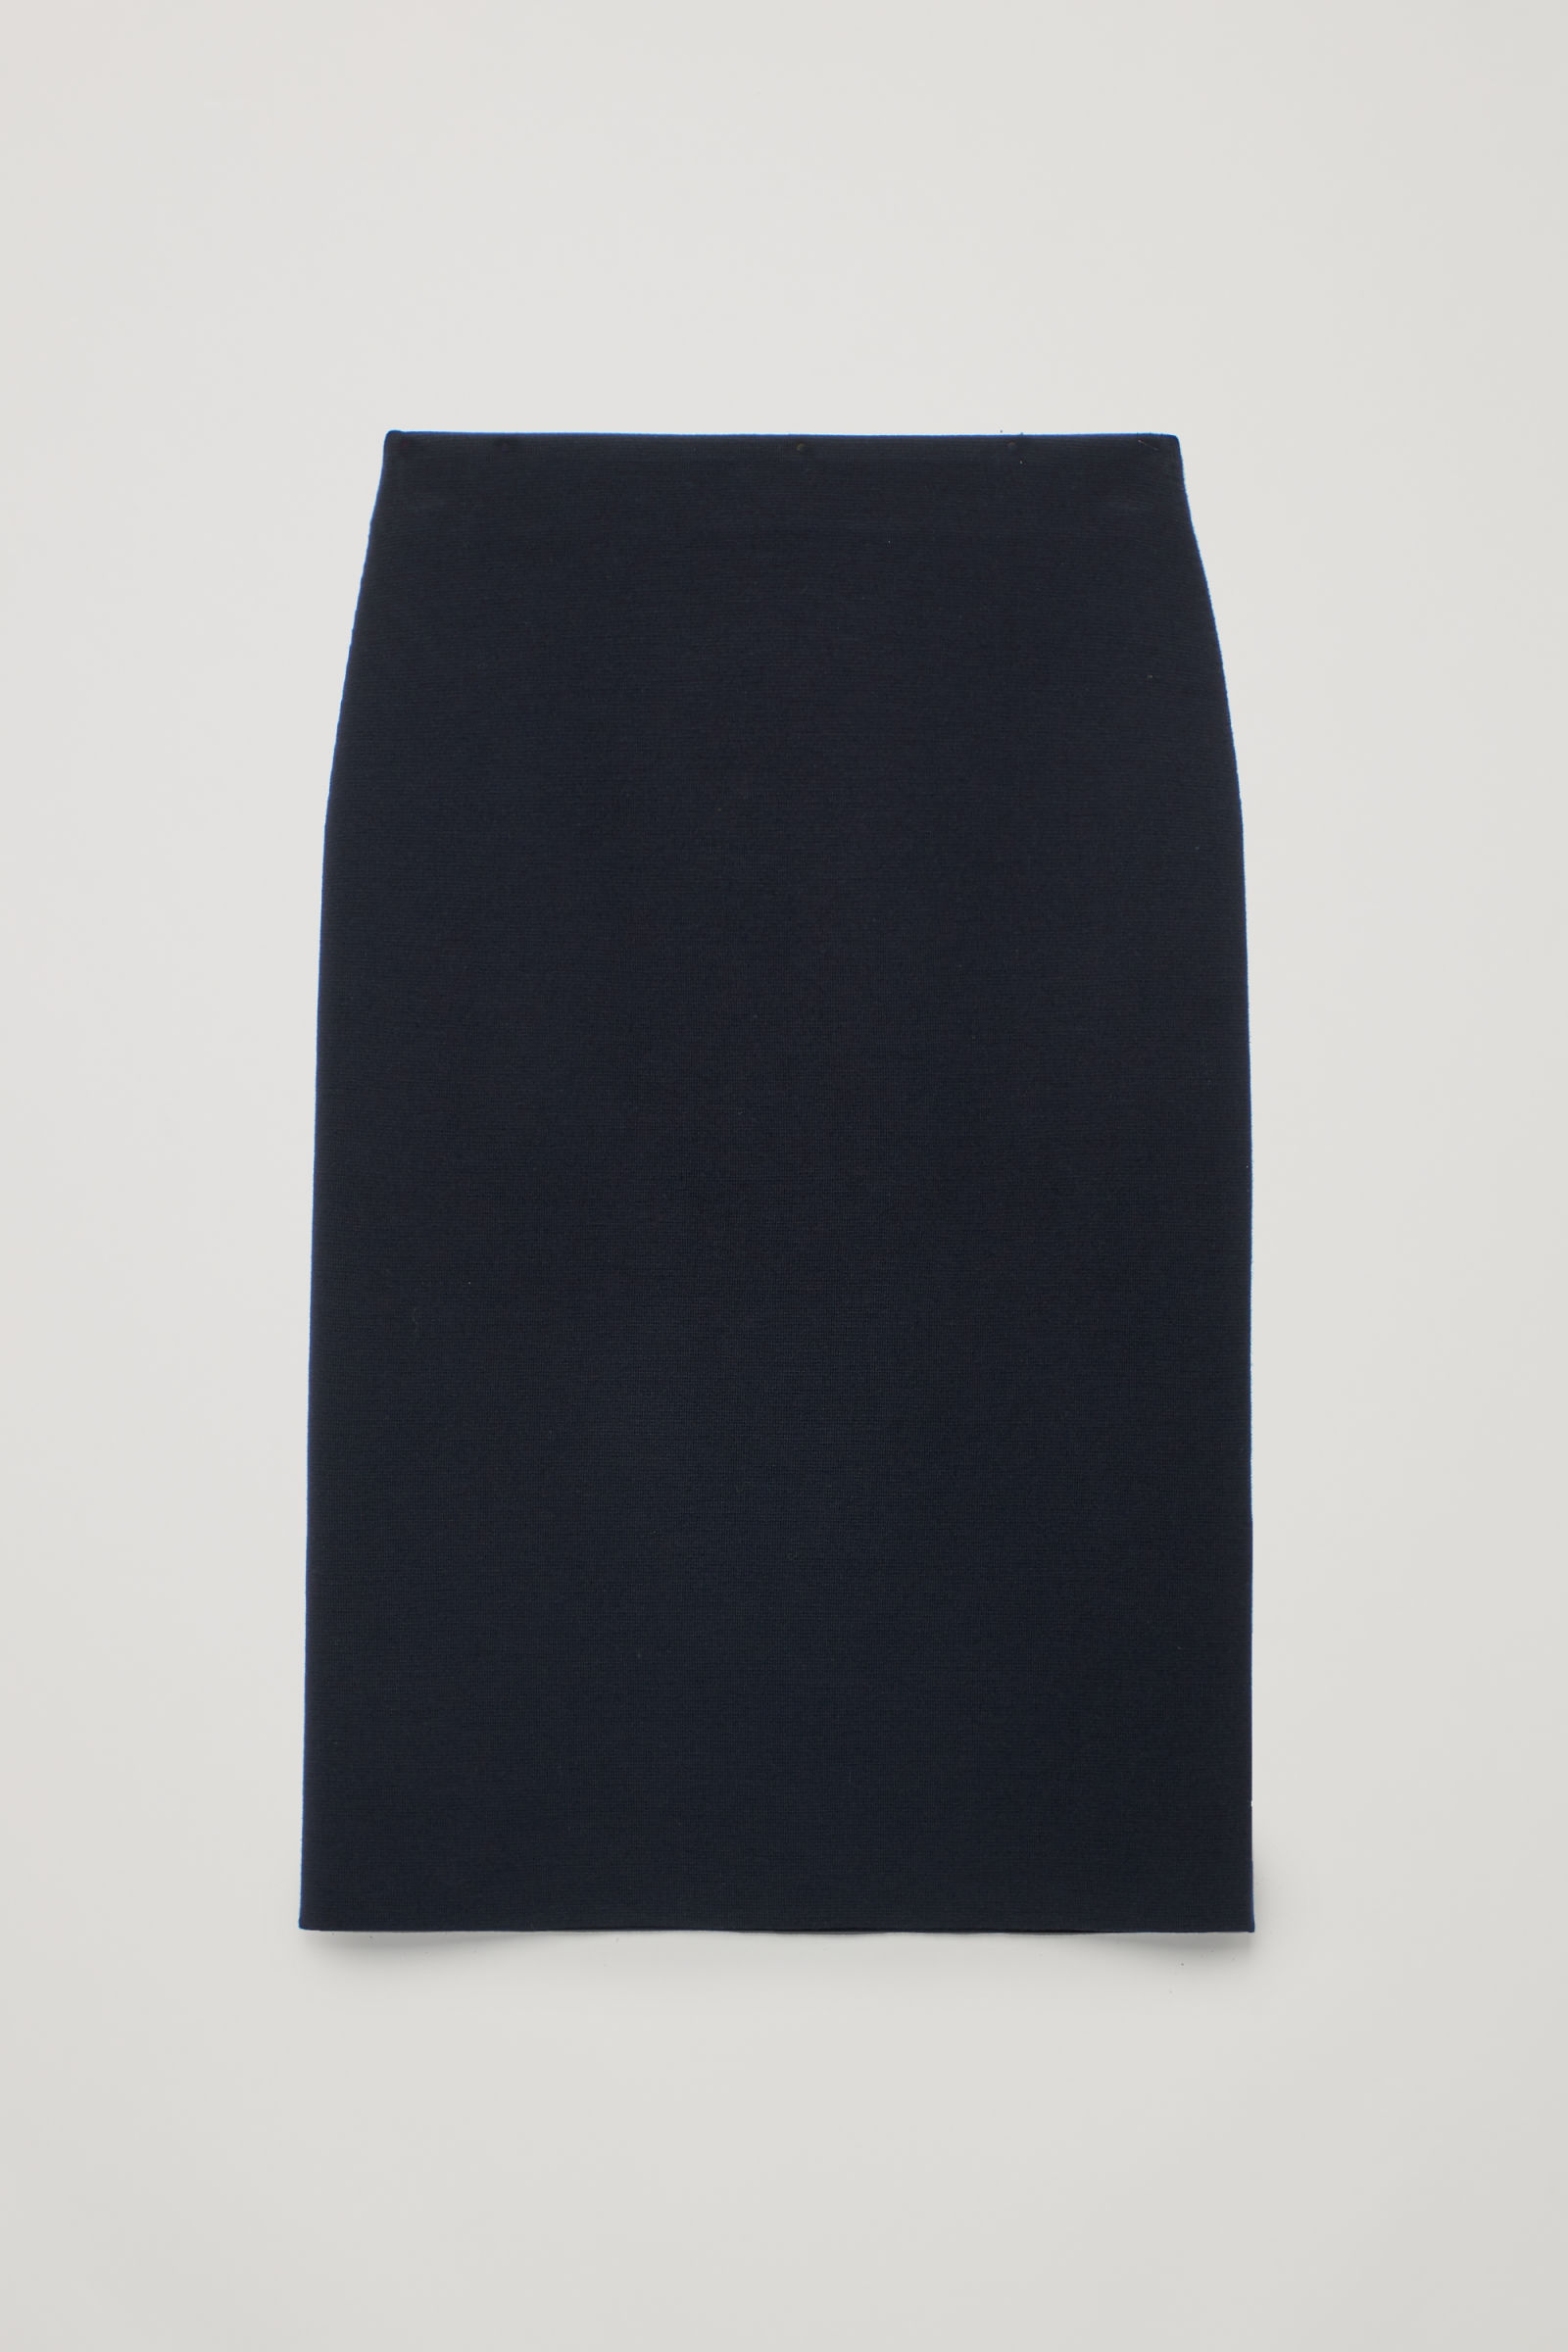 4a40cbe3b8 MERINO-WOOL PENCIL SKIRT - Midnight blue - Skirts - COS